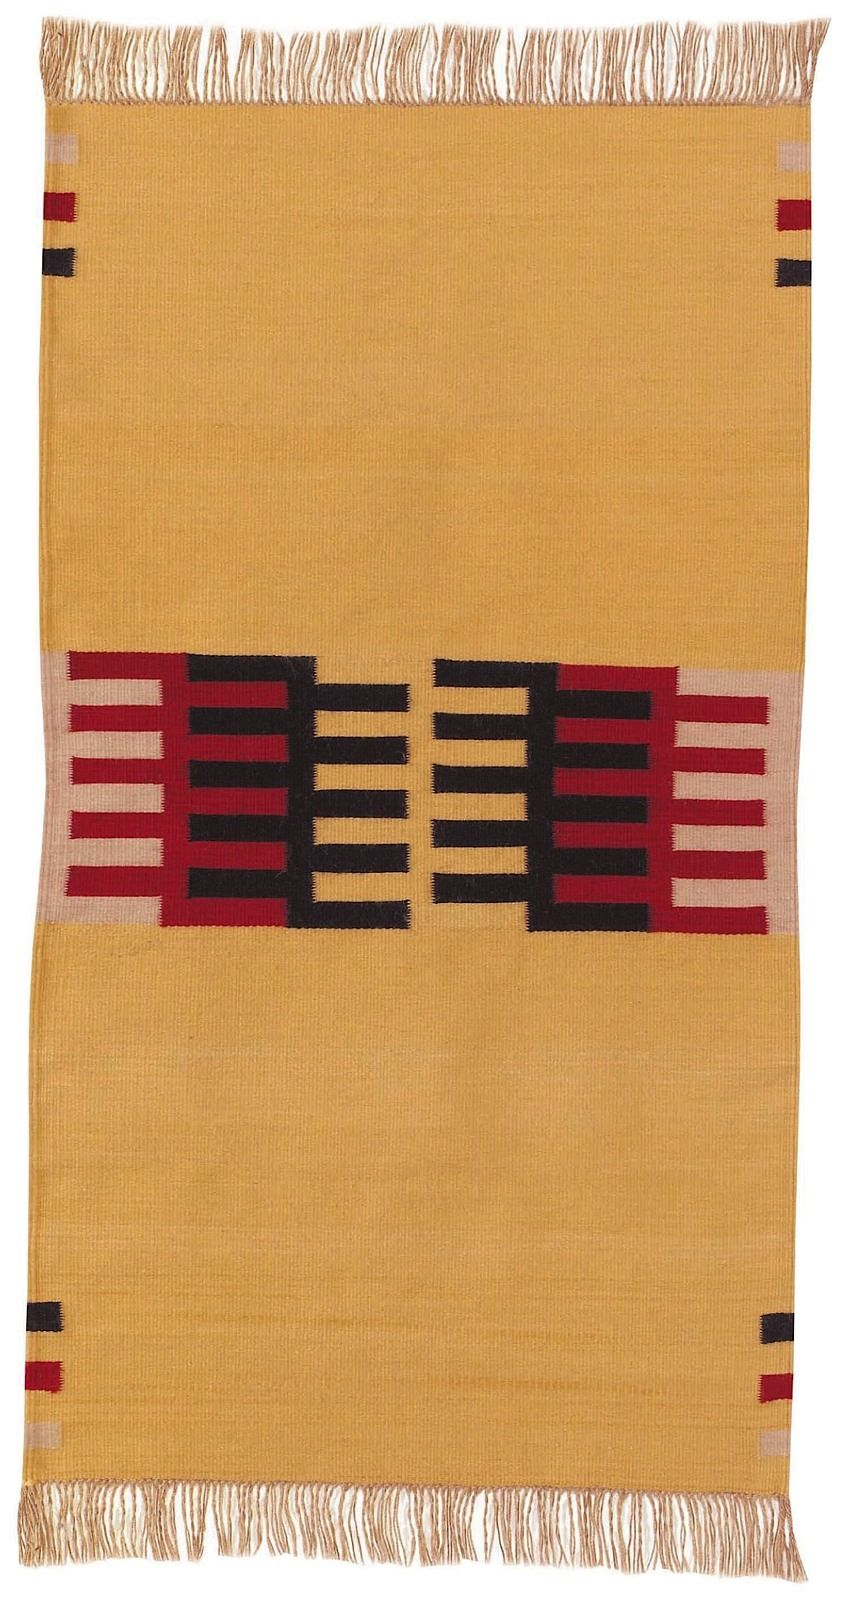 capel woven spirits-del valle southwestern/lodge area rug collection